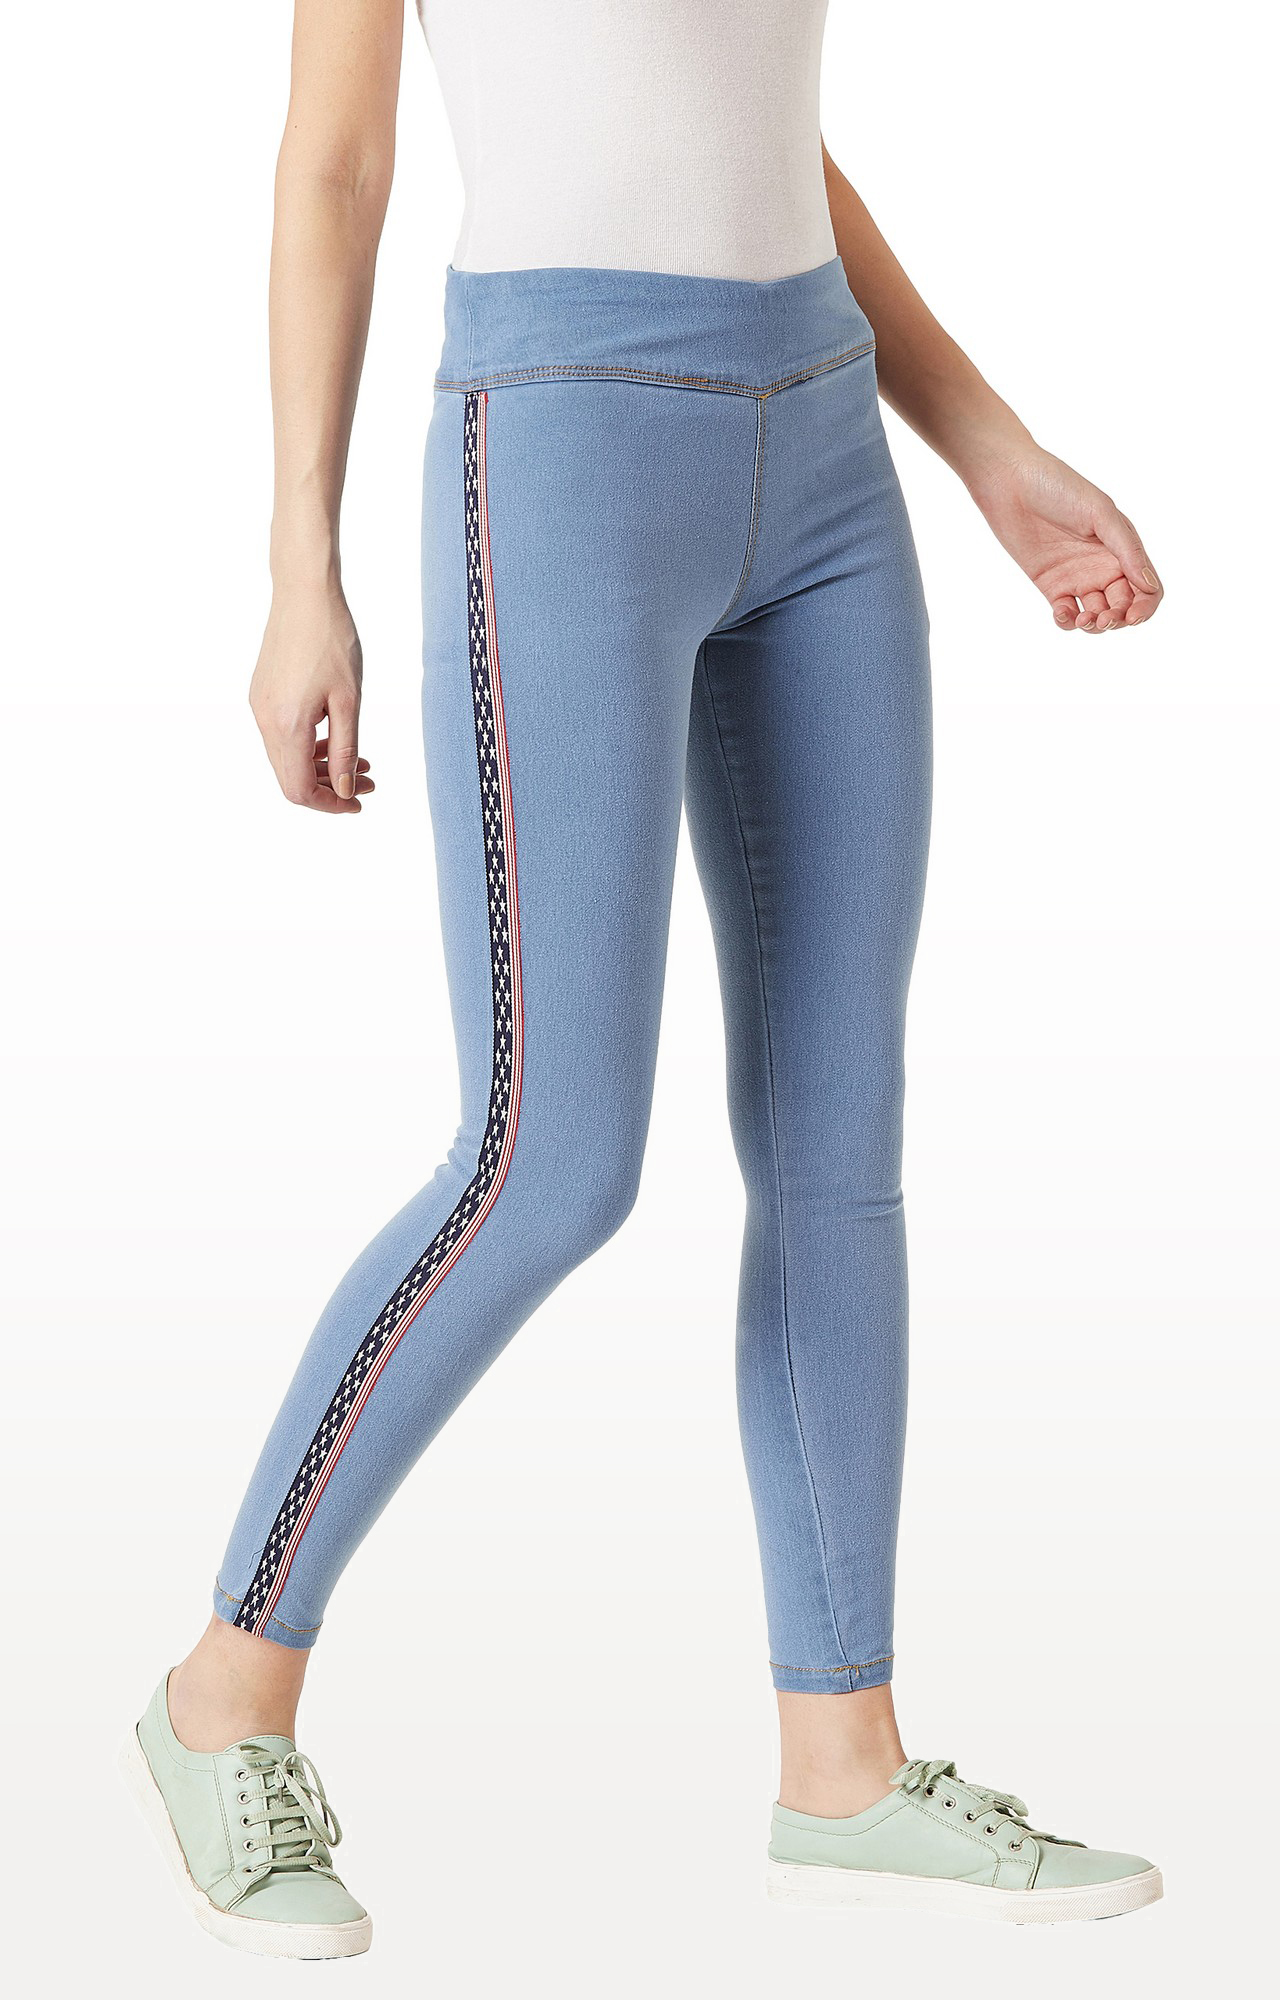 MISS CHASE | Light Blue Solid High Rise Clean Look Regular Length Twill Tape Detailing Stretchable Denim Jeggings